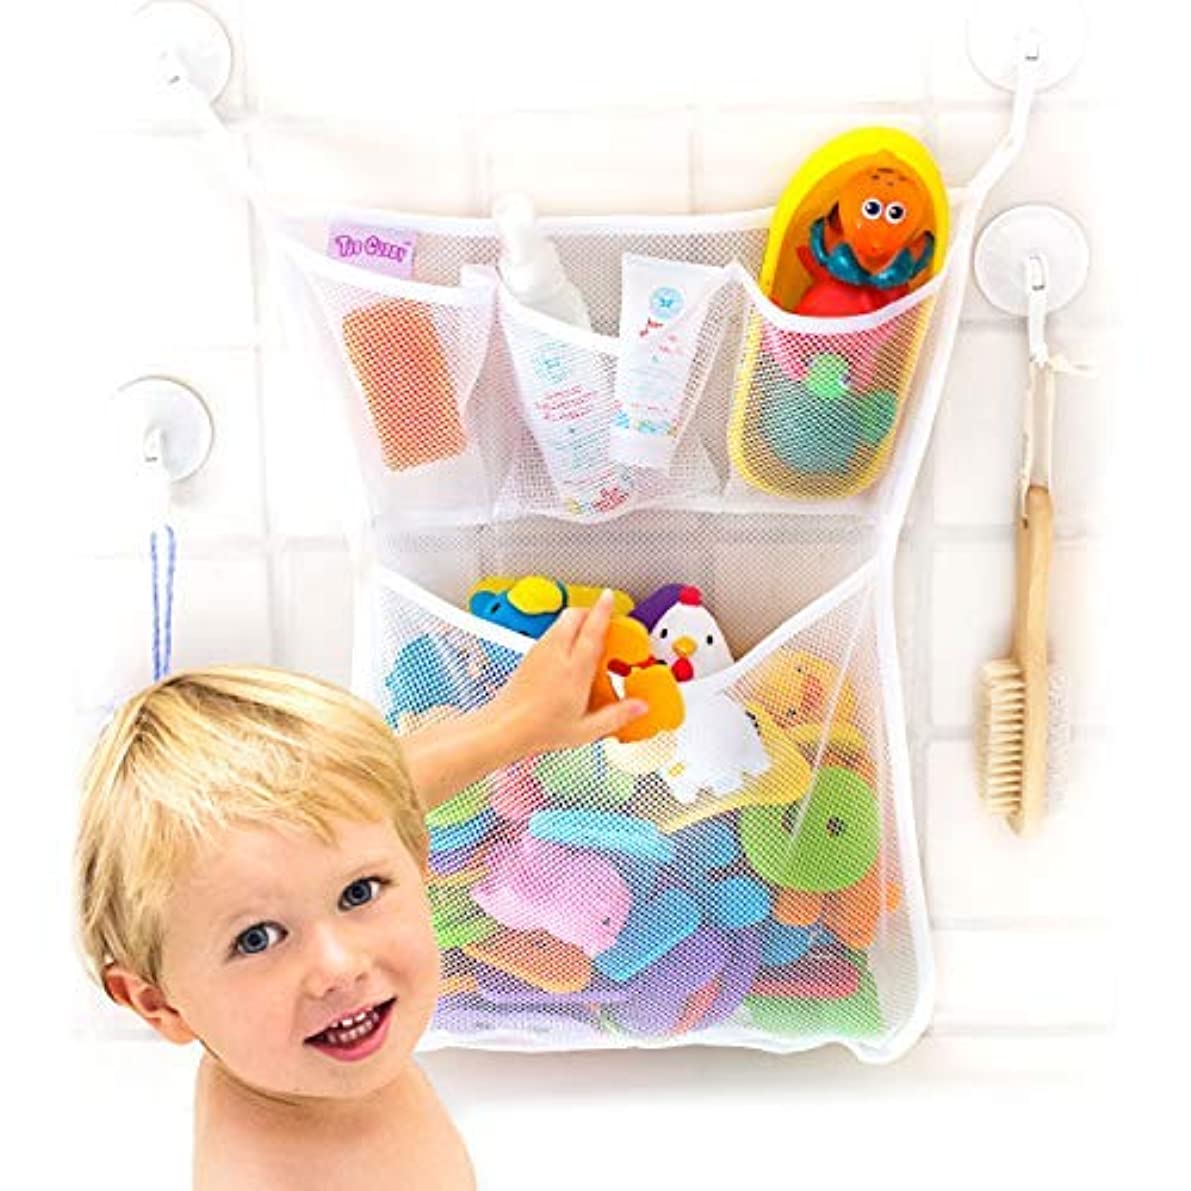 "Bath Toy Organizer -The Original Tub Cubby - Large 14x20"" Quick Dry Bathtub Mesh Net - Massive Baby Toy Storage Bin + 3 Soap Pockets - New 3M Stickers and 4 Suction Hooks"